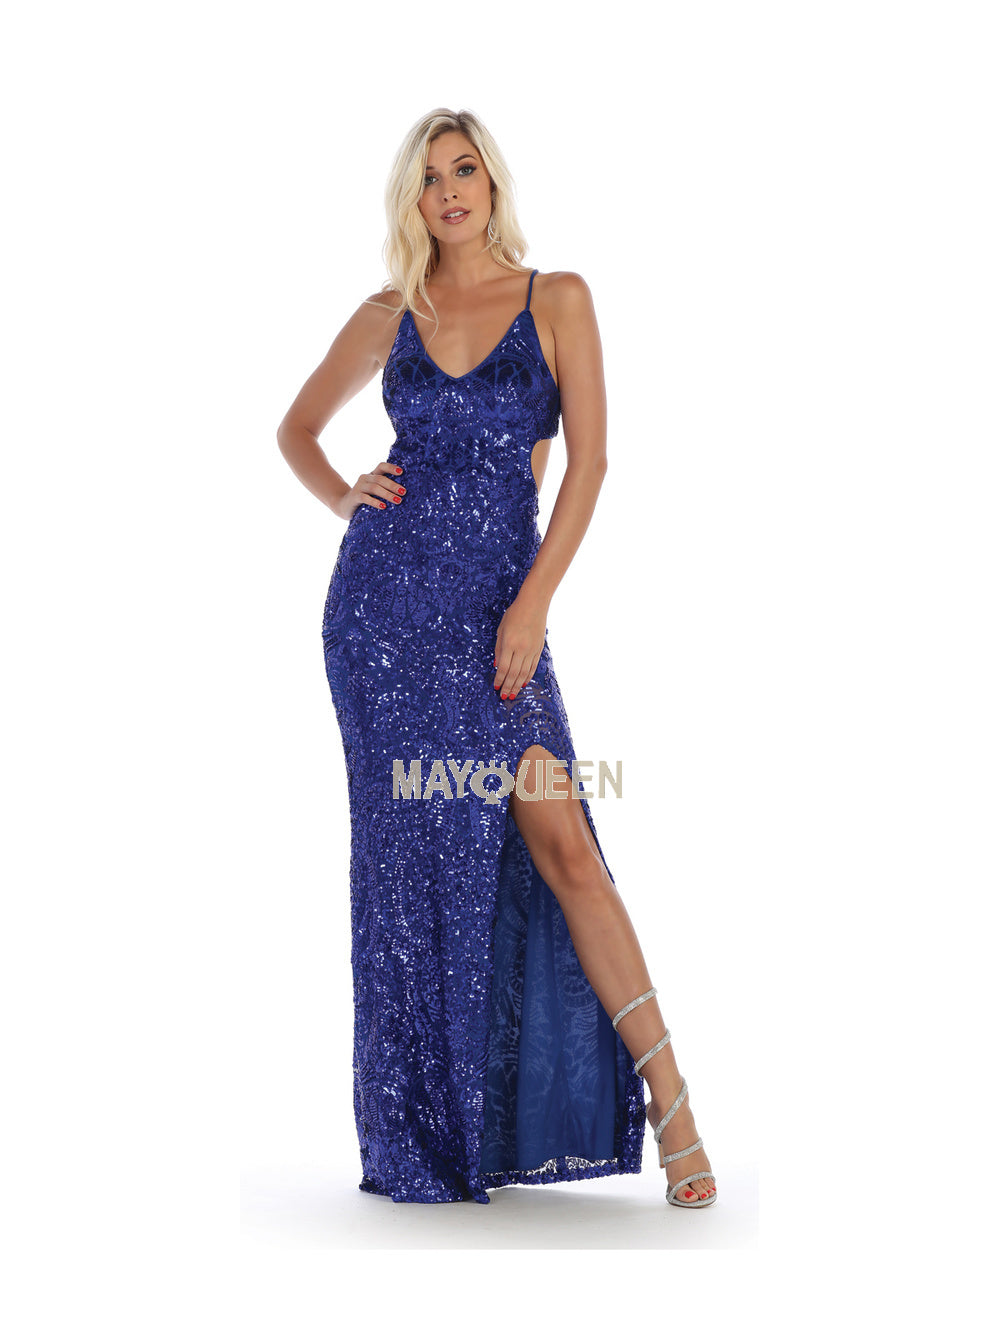 Mayqueen Size Chart E MQ 7665 - Full Sequin Dress with High Slit and Open Back - Diggz Prom